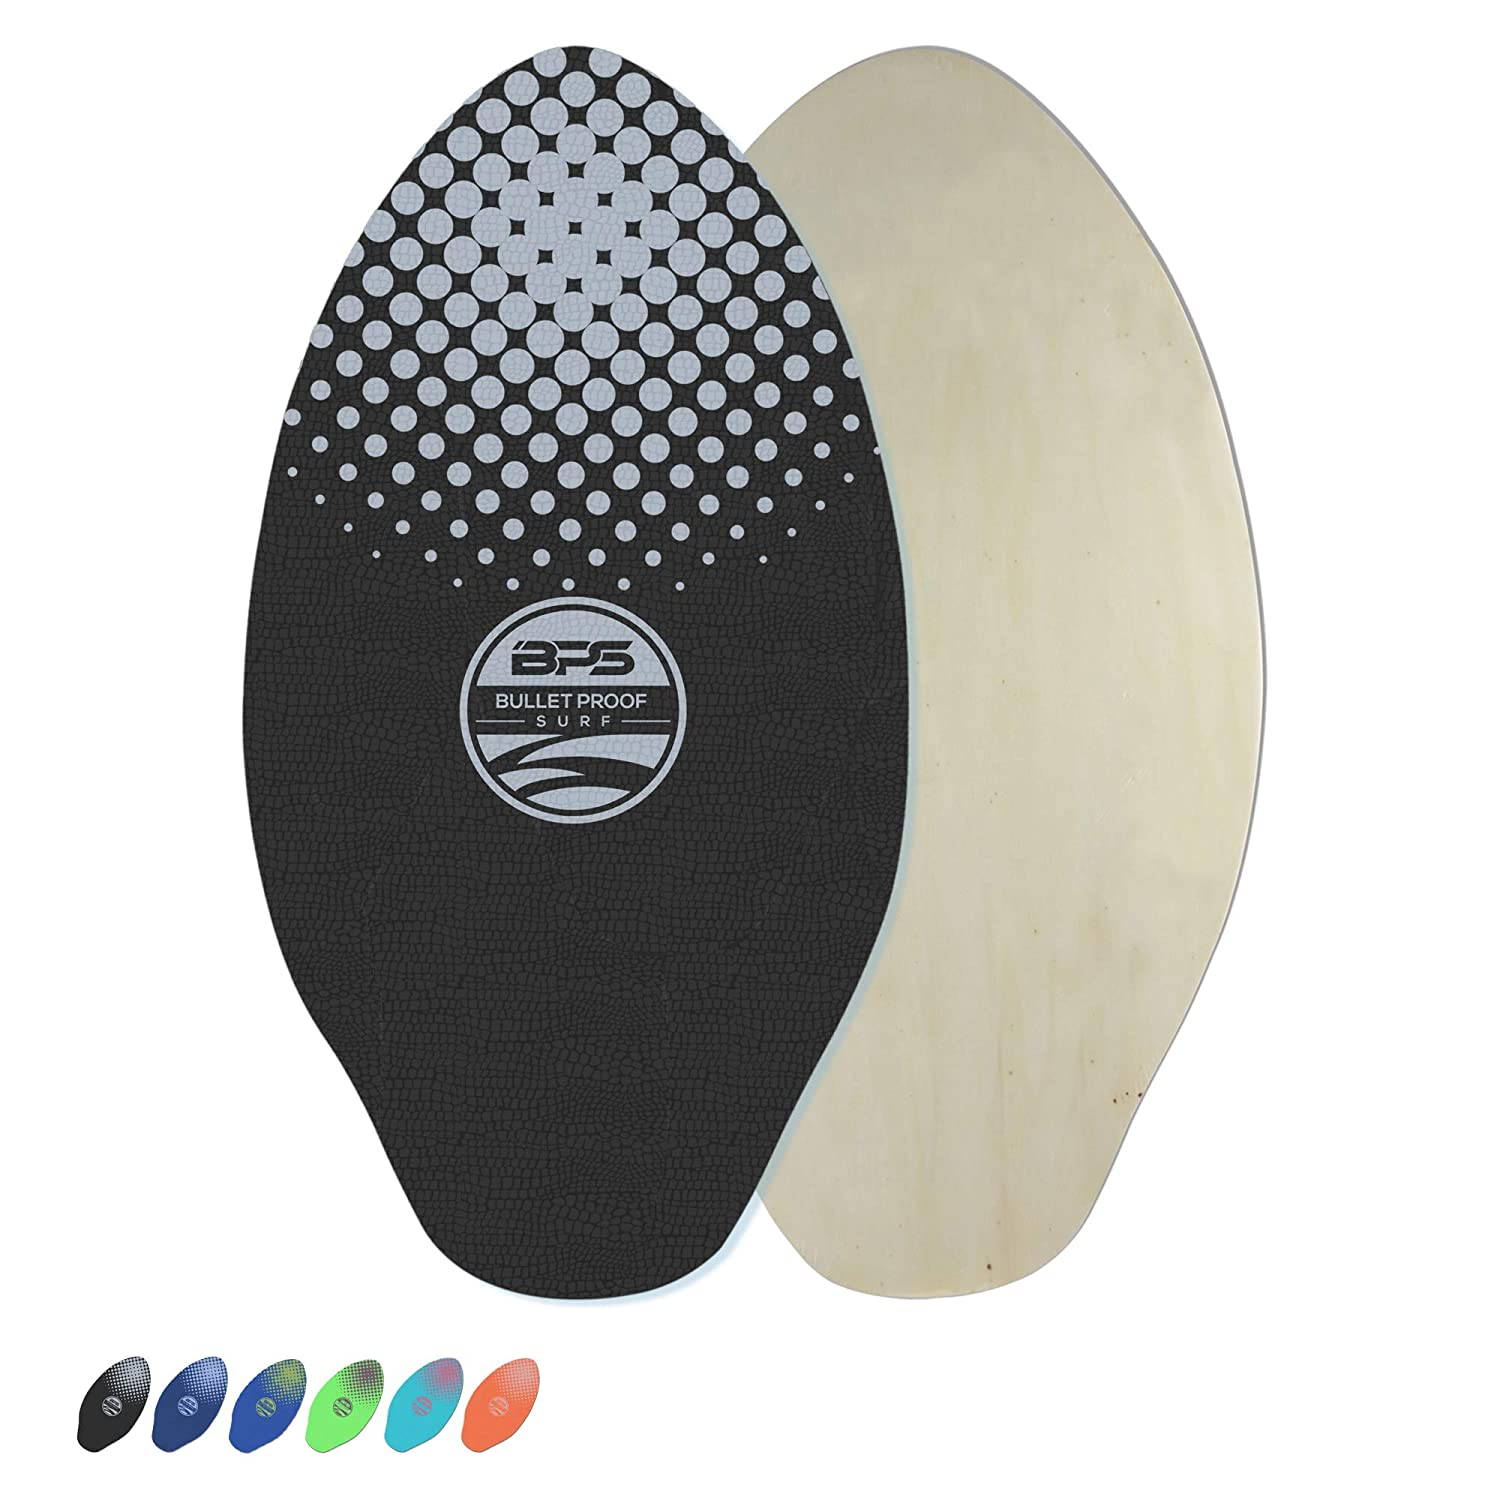 Bps Gator Skimboards With Colored Eva Grip Pad And High Gloss Clear Coat Wooden Skim Board With Grip Pads For Kids And Adults Choose From 3